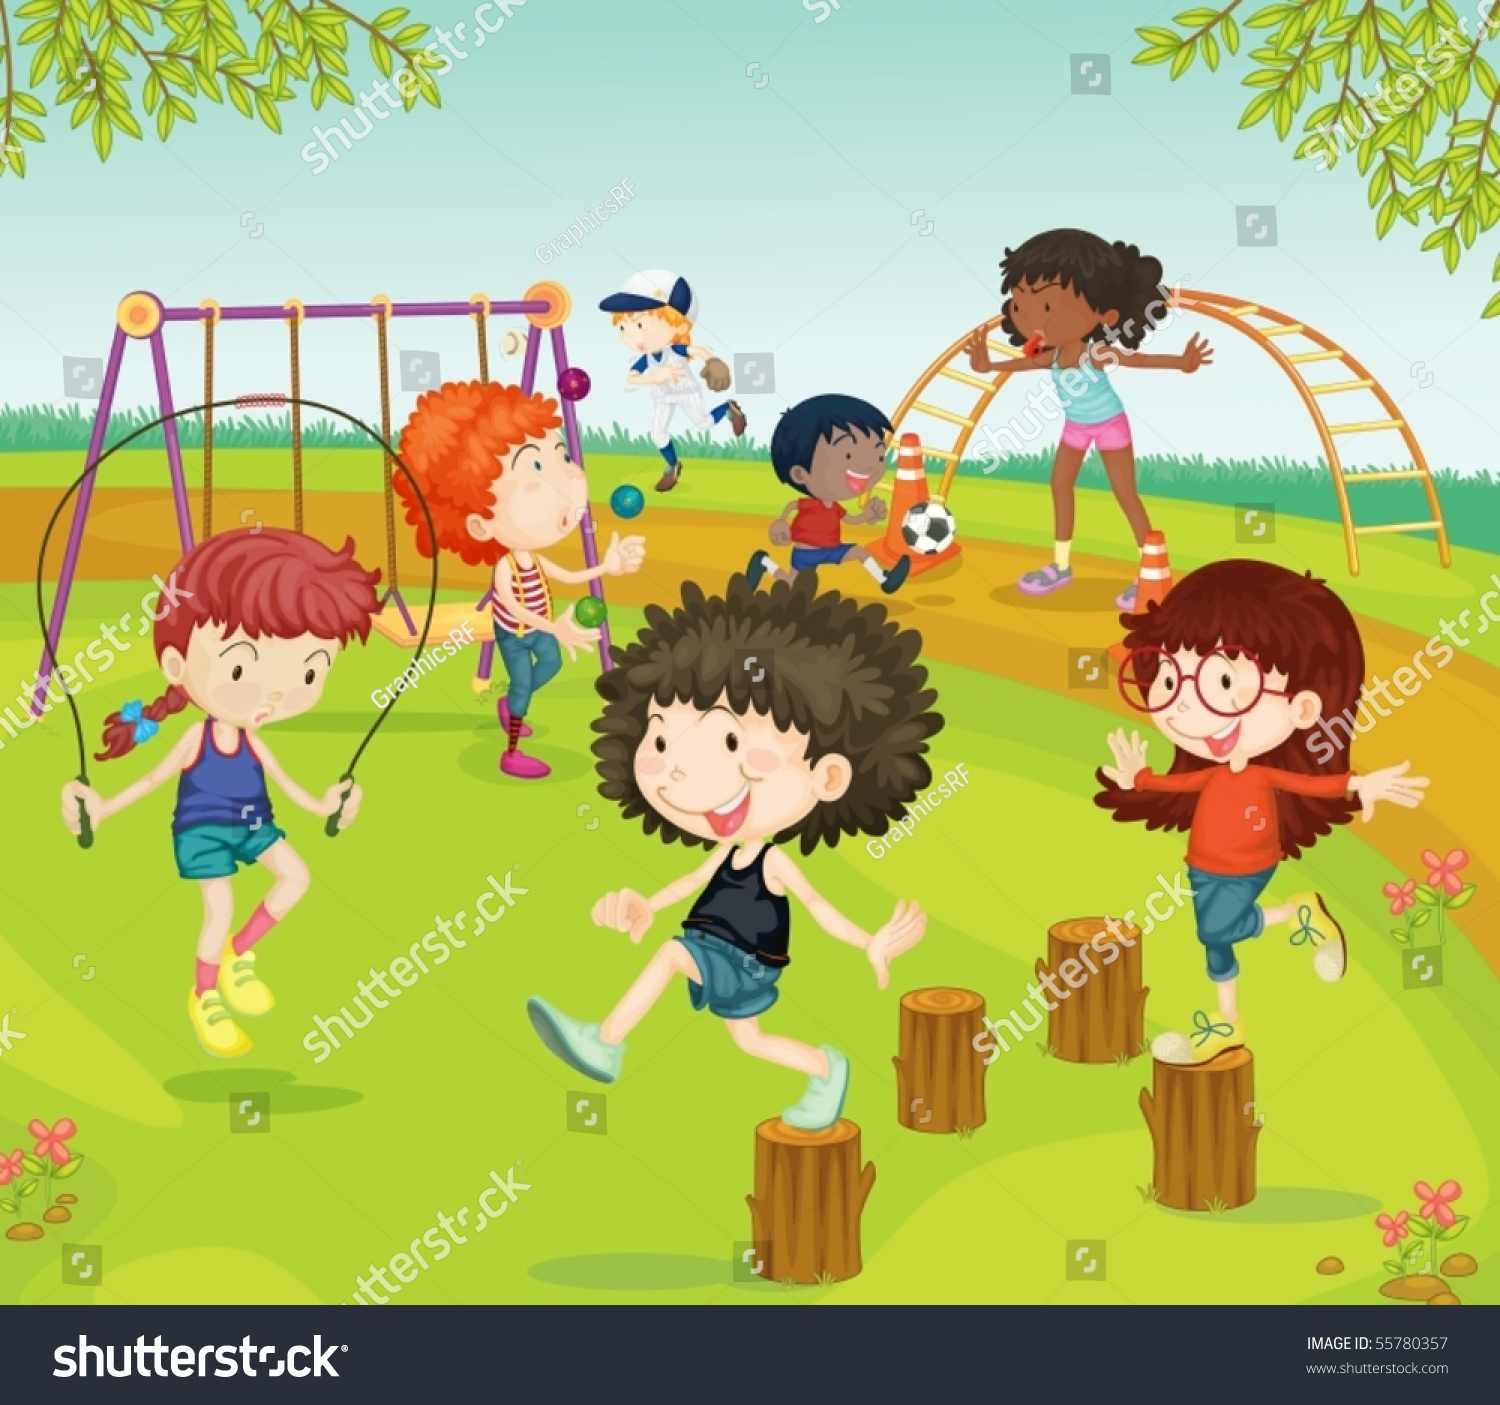 Illustration Of Children Playing In Park On Colorful